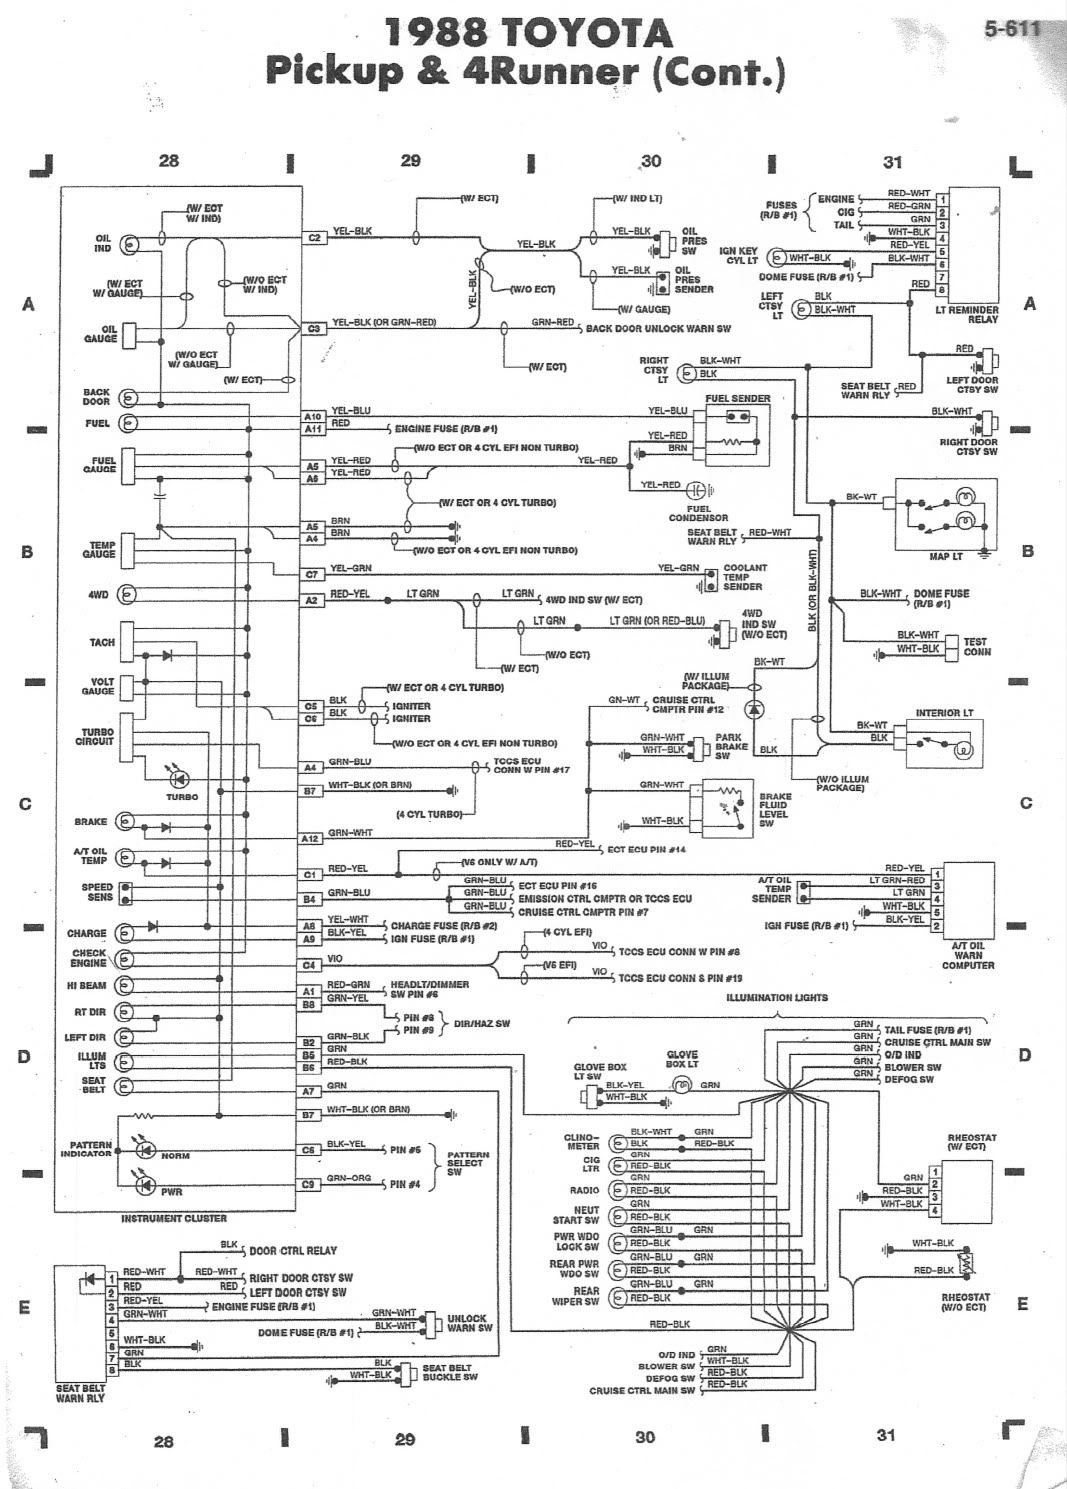 3vze wiring harness diagram information of wiring diagram \u2022 Trailer Wiring Harness 88 3vze 5 speed wiring diagram help page 2 yotatech forums rh pinterest co uk 1996 ford wiring harness diagrams 1996 ford wiring harness diagrams